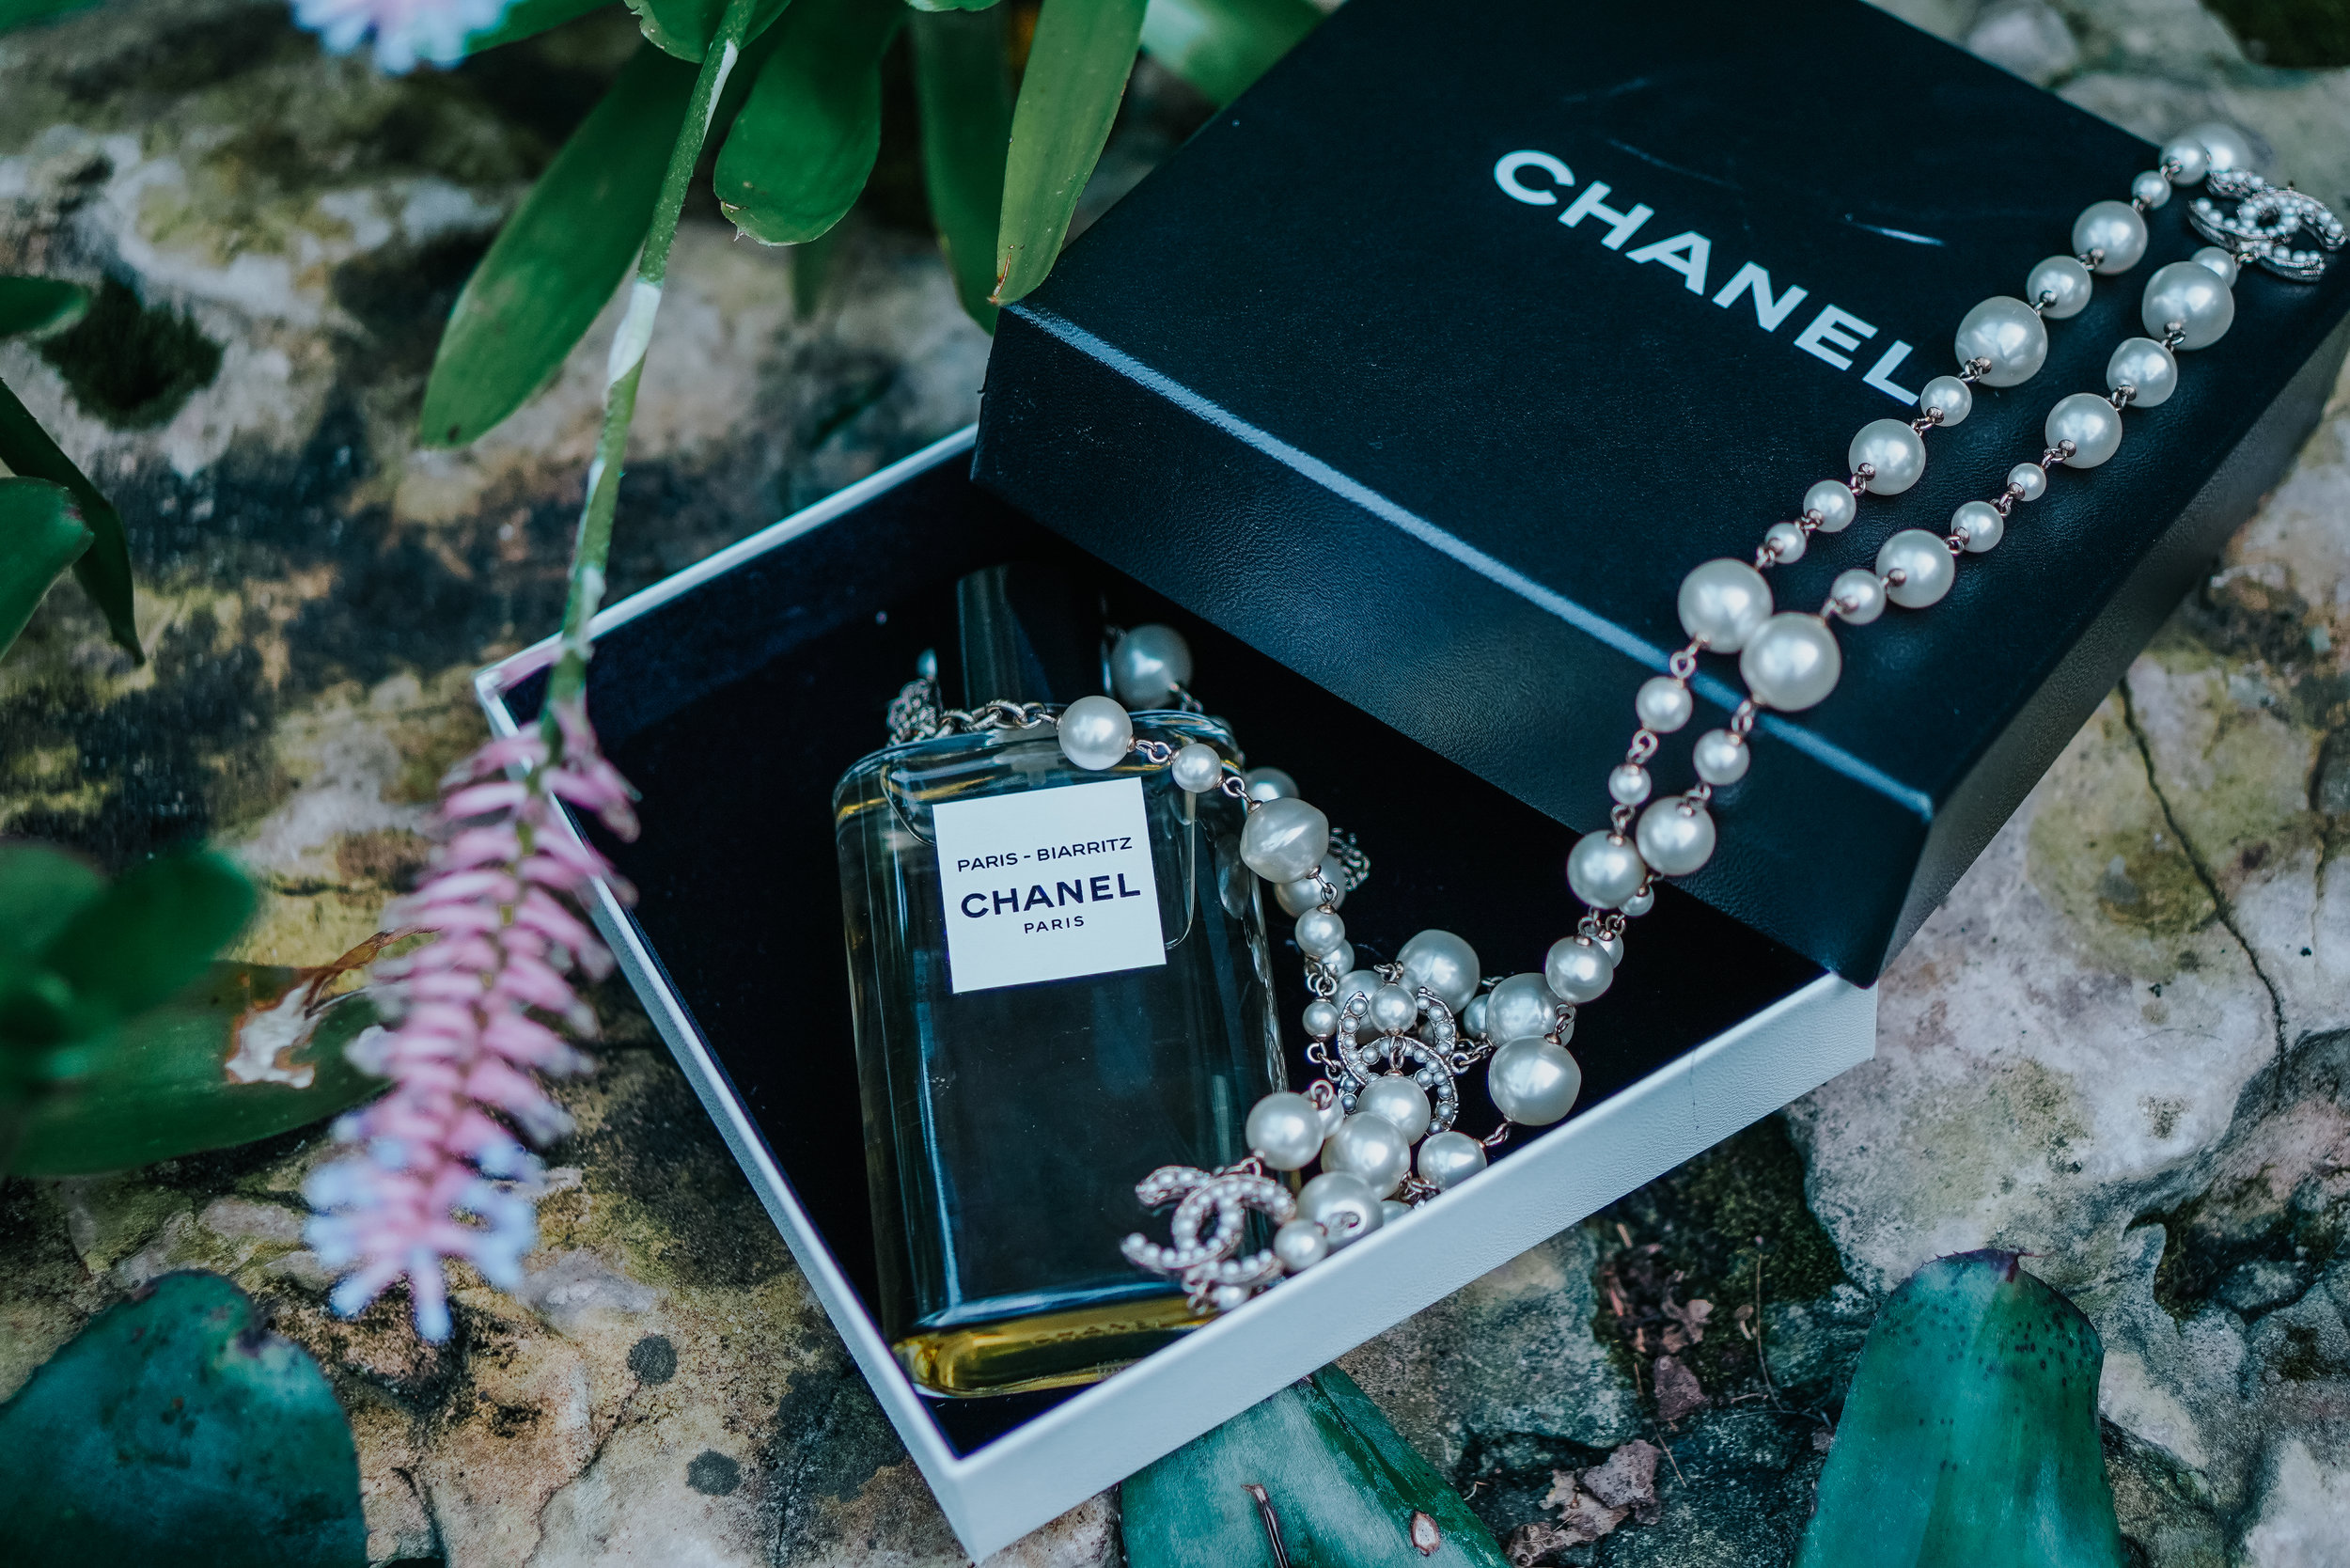 Shop these three amazing Chanel perfumes, hair/shower gel and body lotion here: